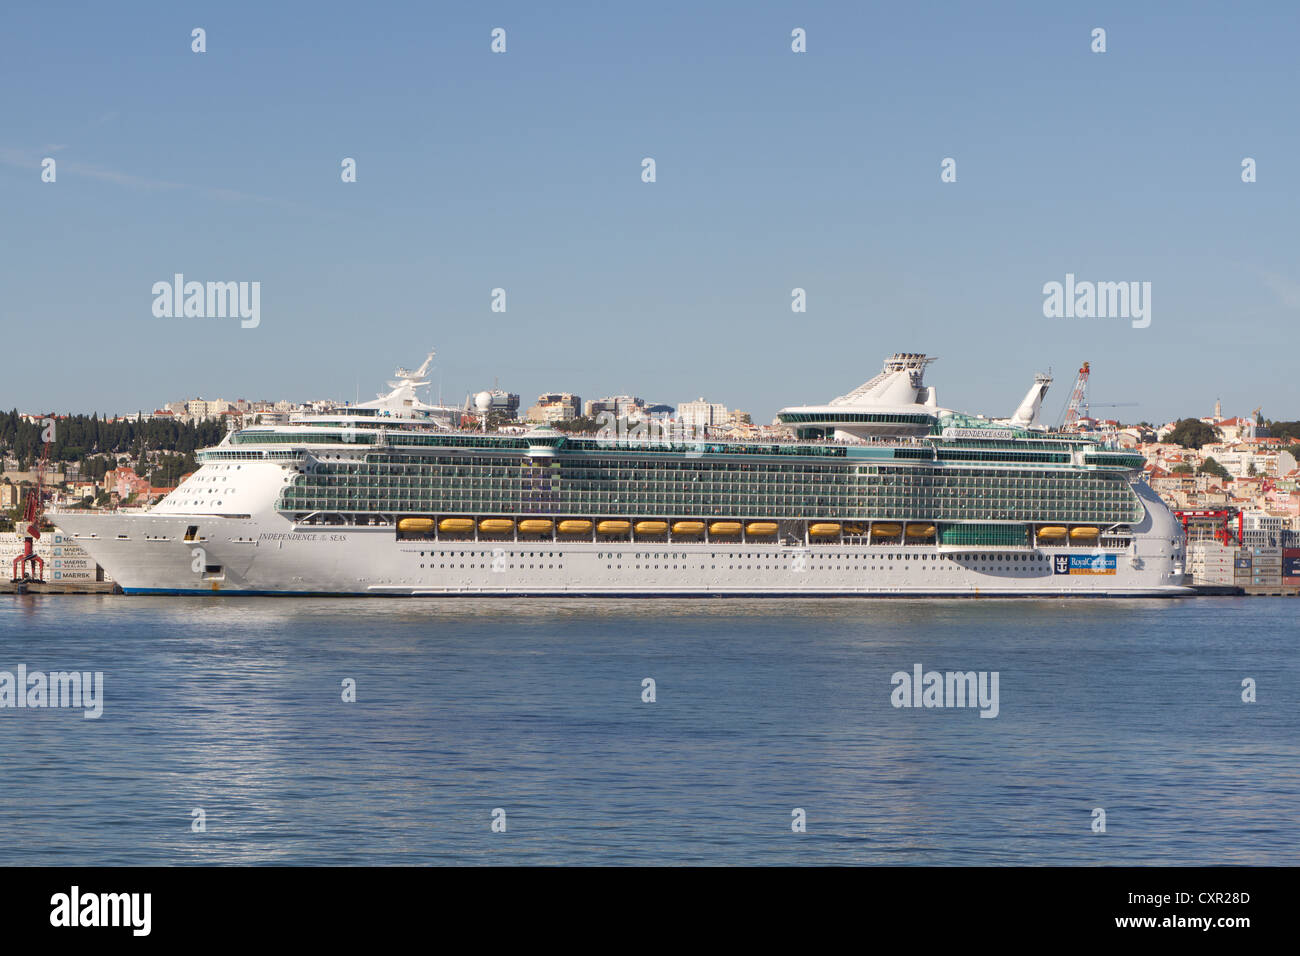 Royal Caribbean Independence of the seas, the biggest cruise ship in the world - Stock Image